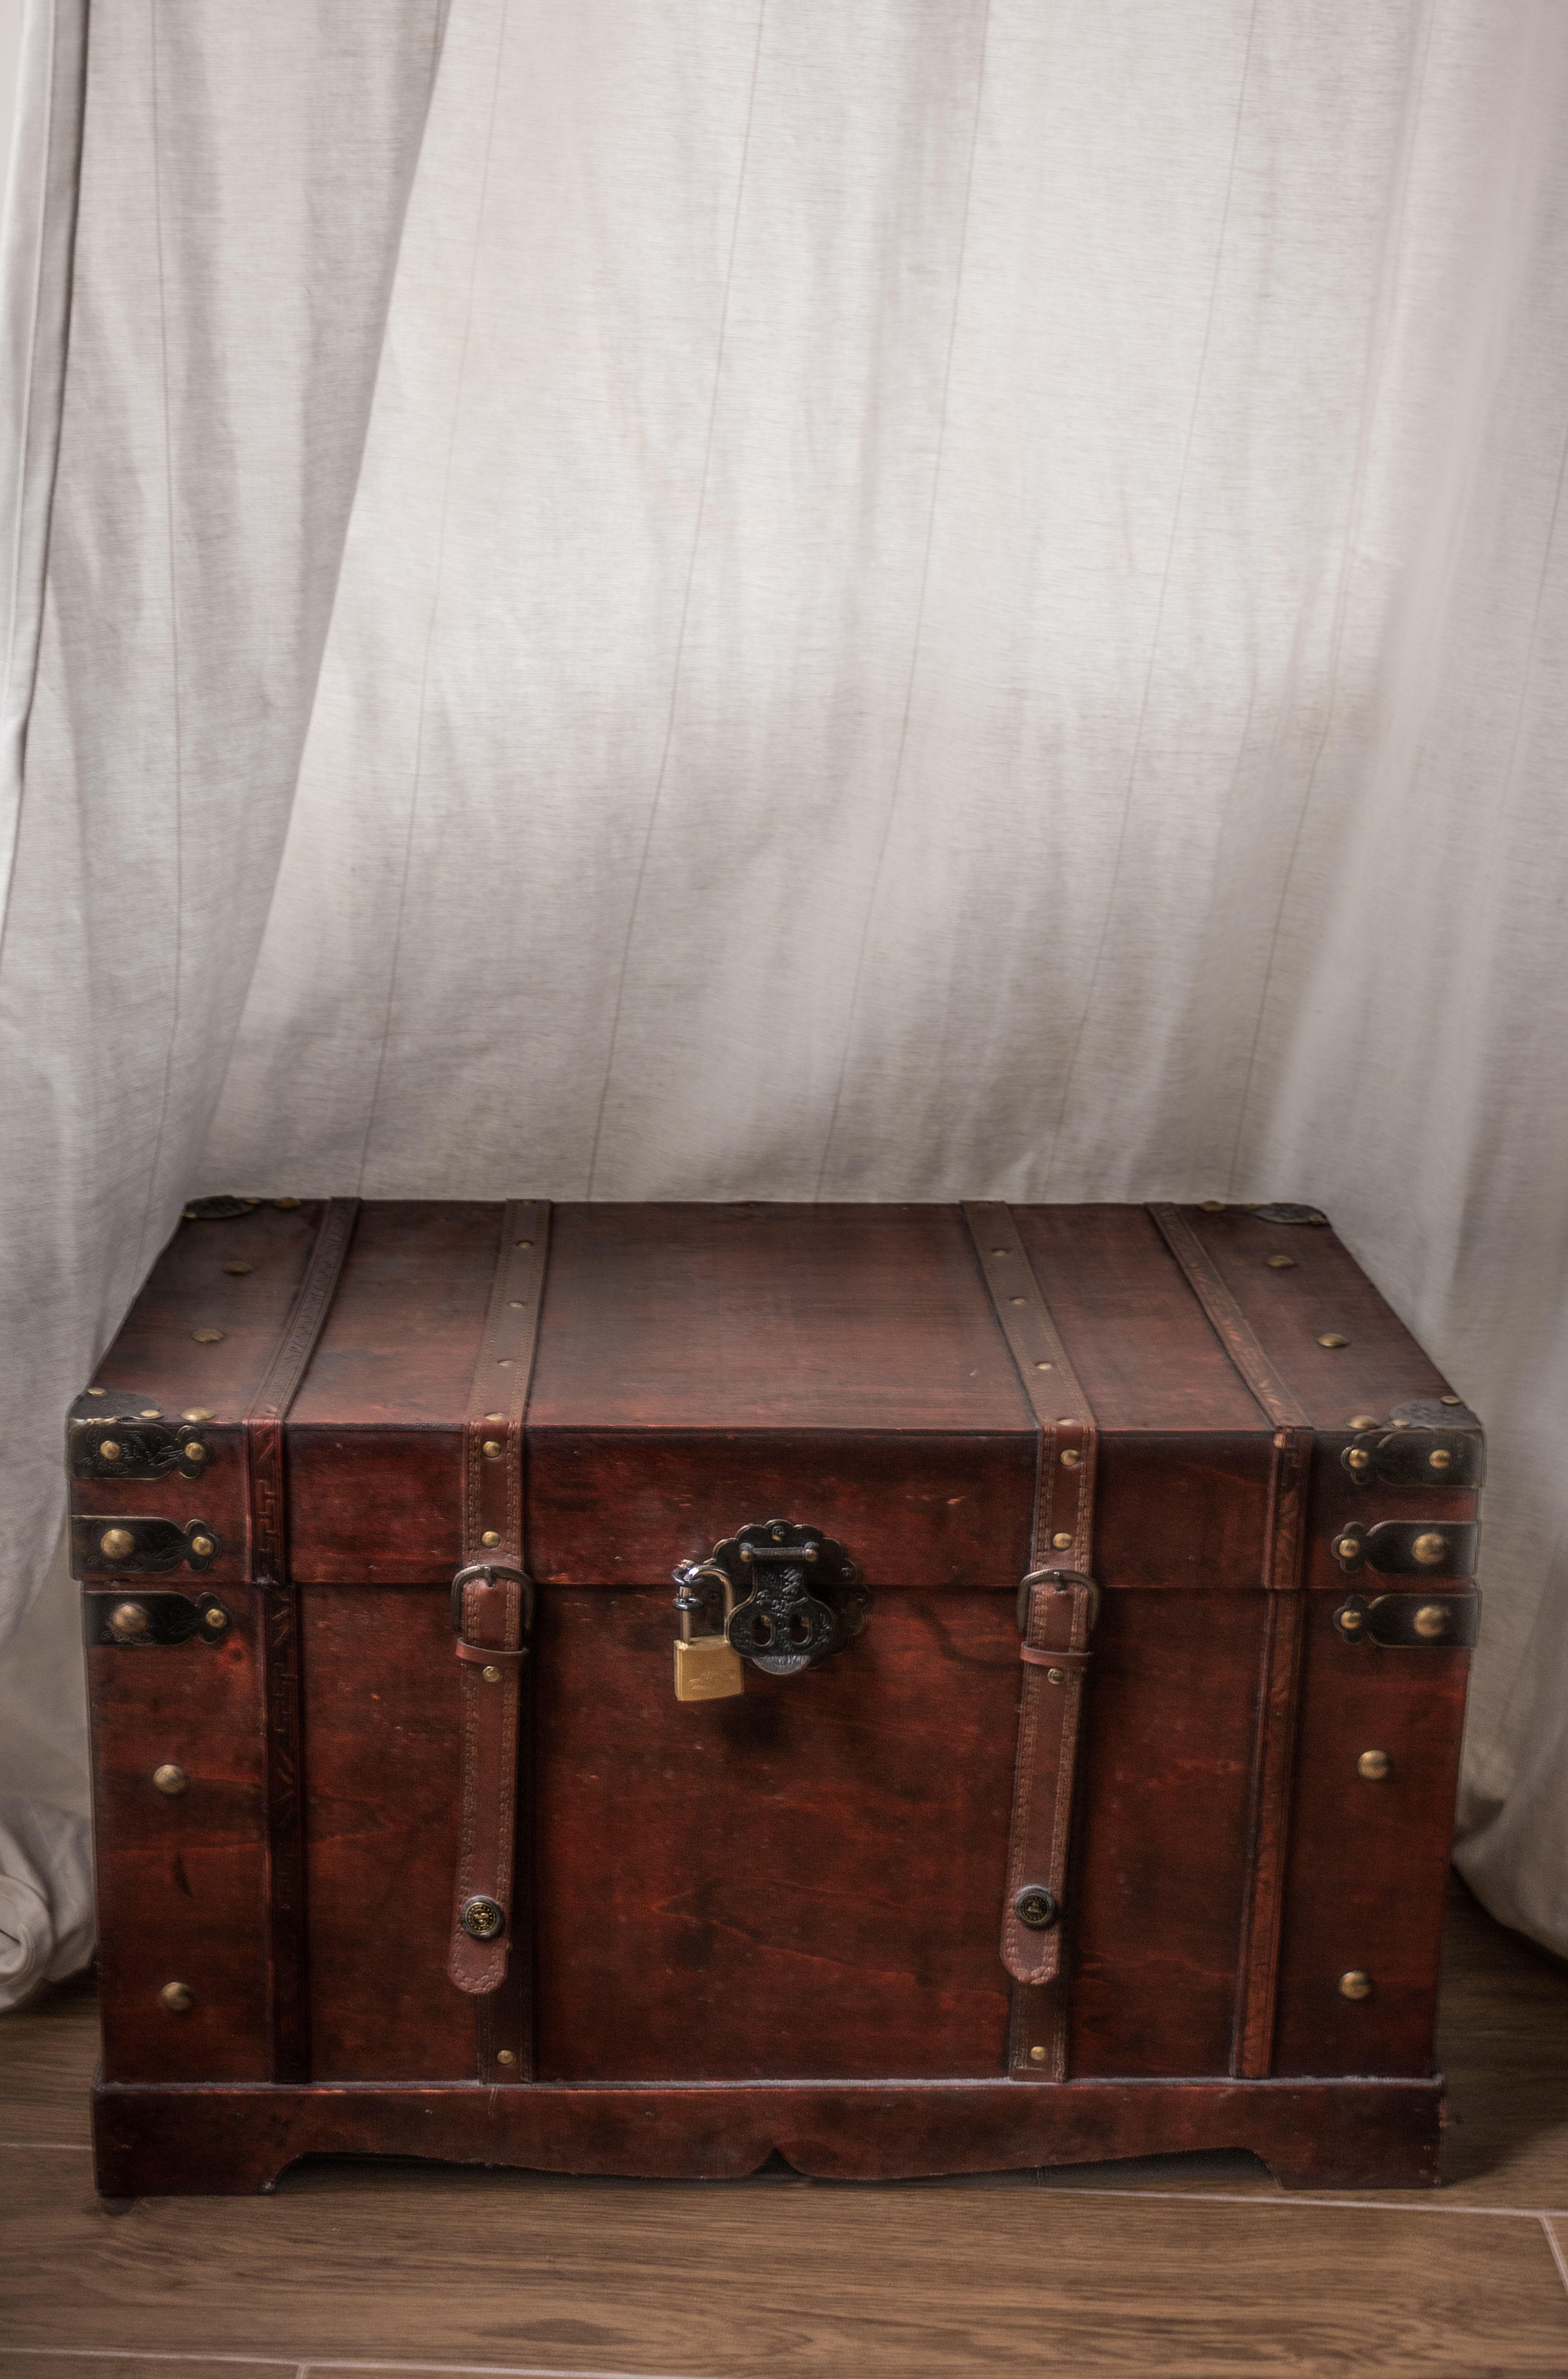 A travelling trunk, lid closed and locked with a padlock